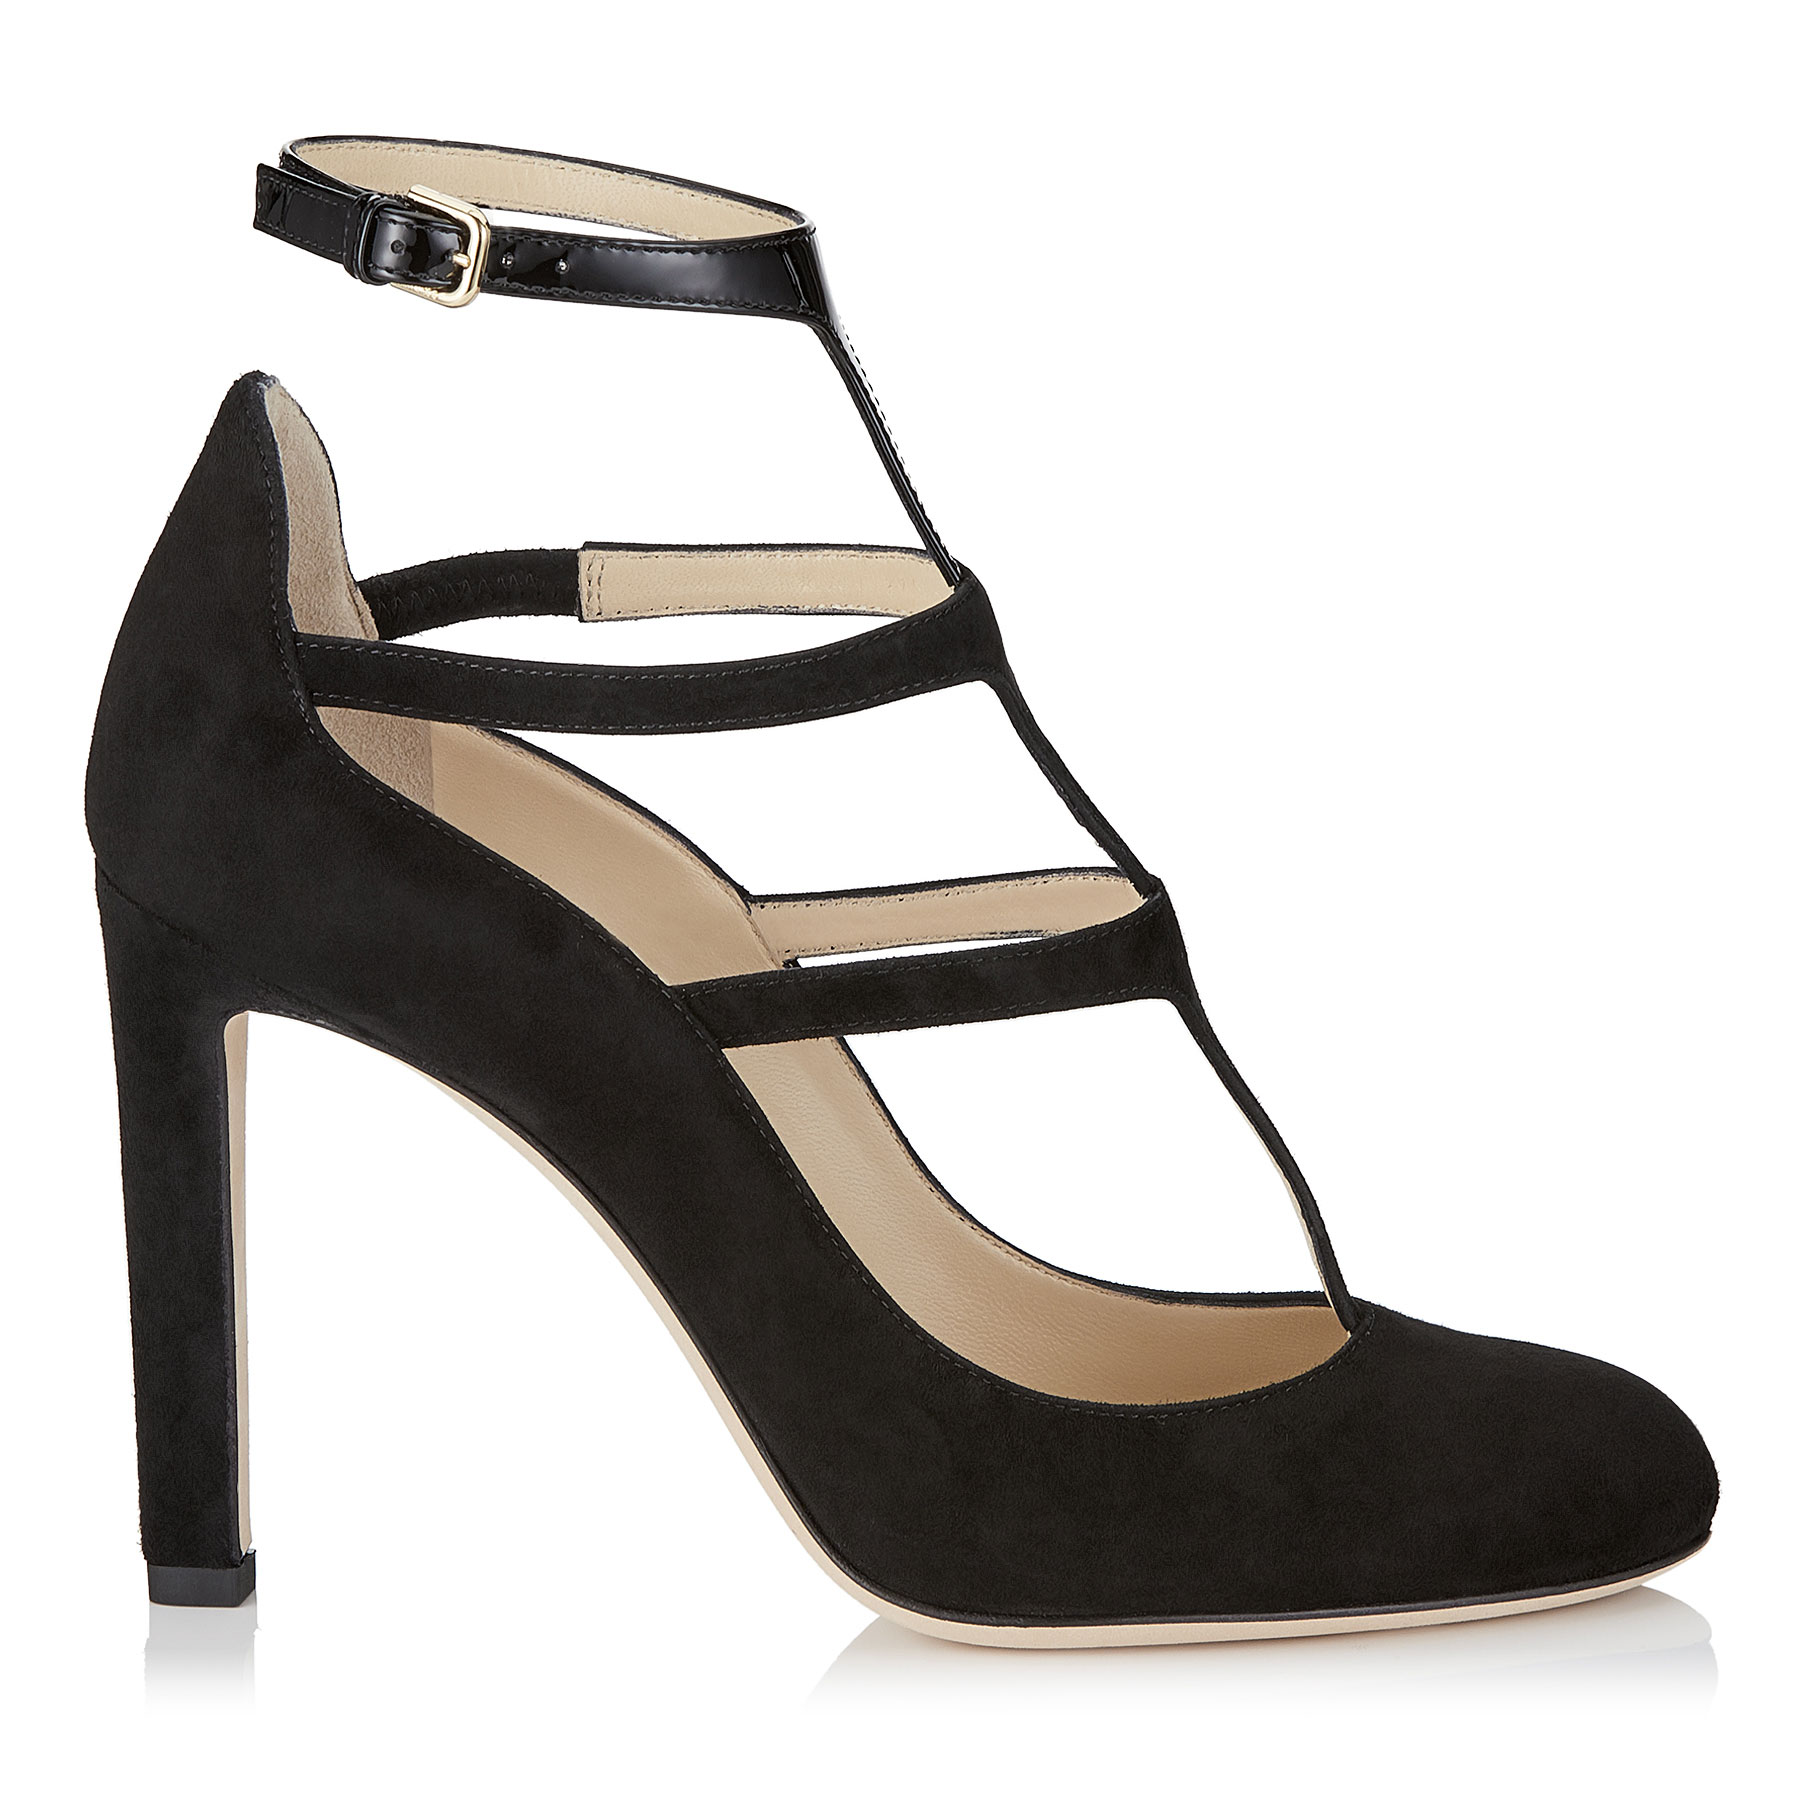 DOLL 100 Black Suede and Patent Caged Round Toe Pumps